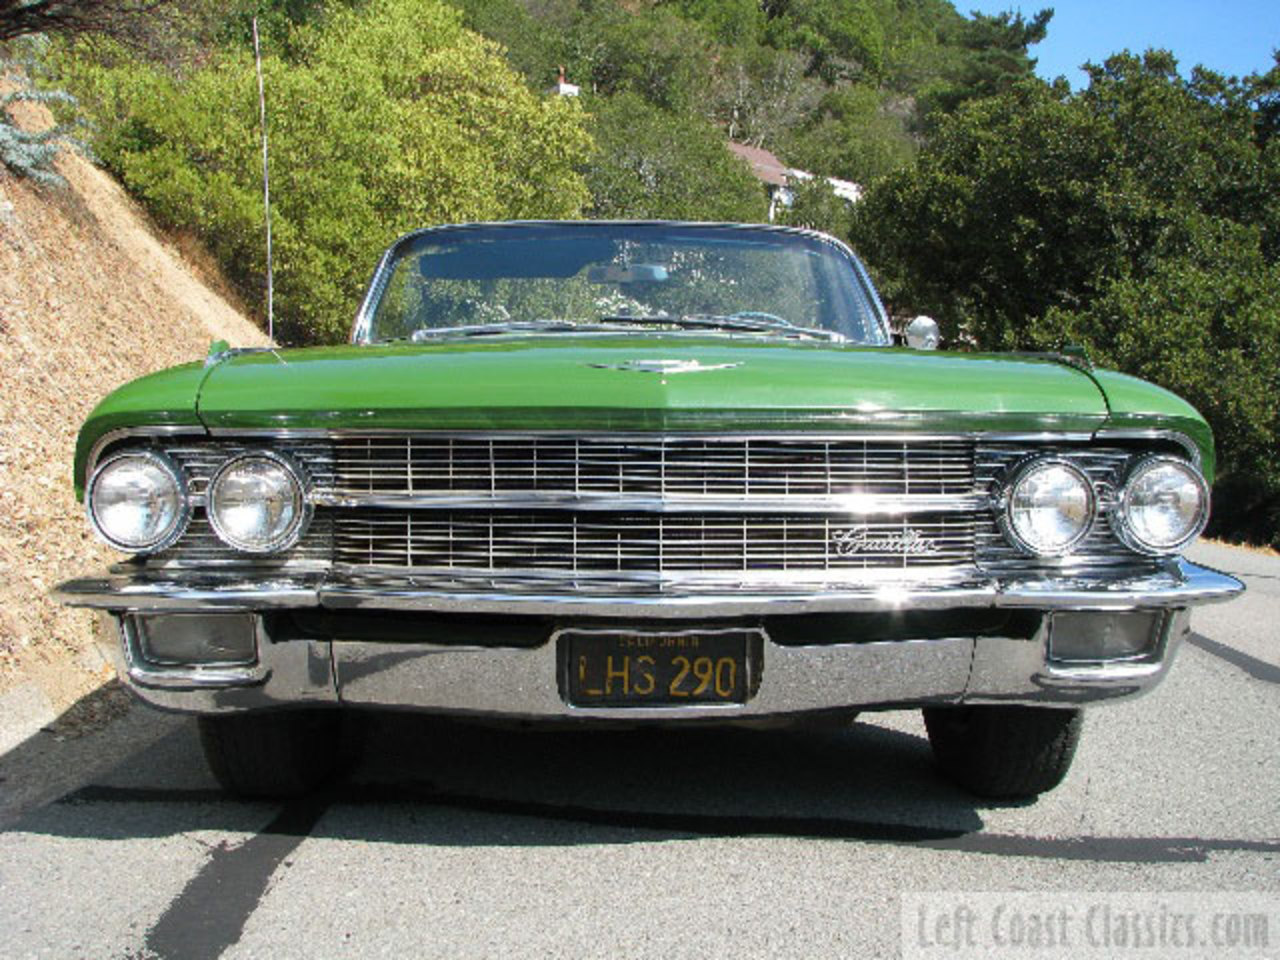 1962 Cadillac Convertible. Rust Free 1-family owned California Car